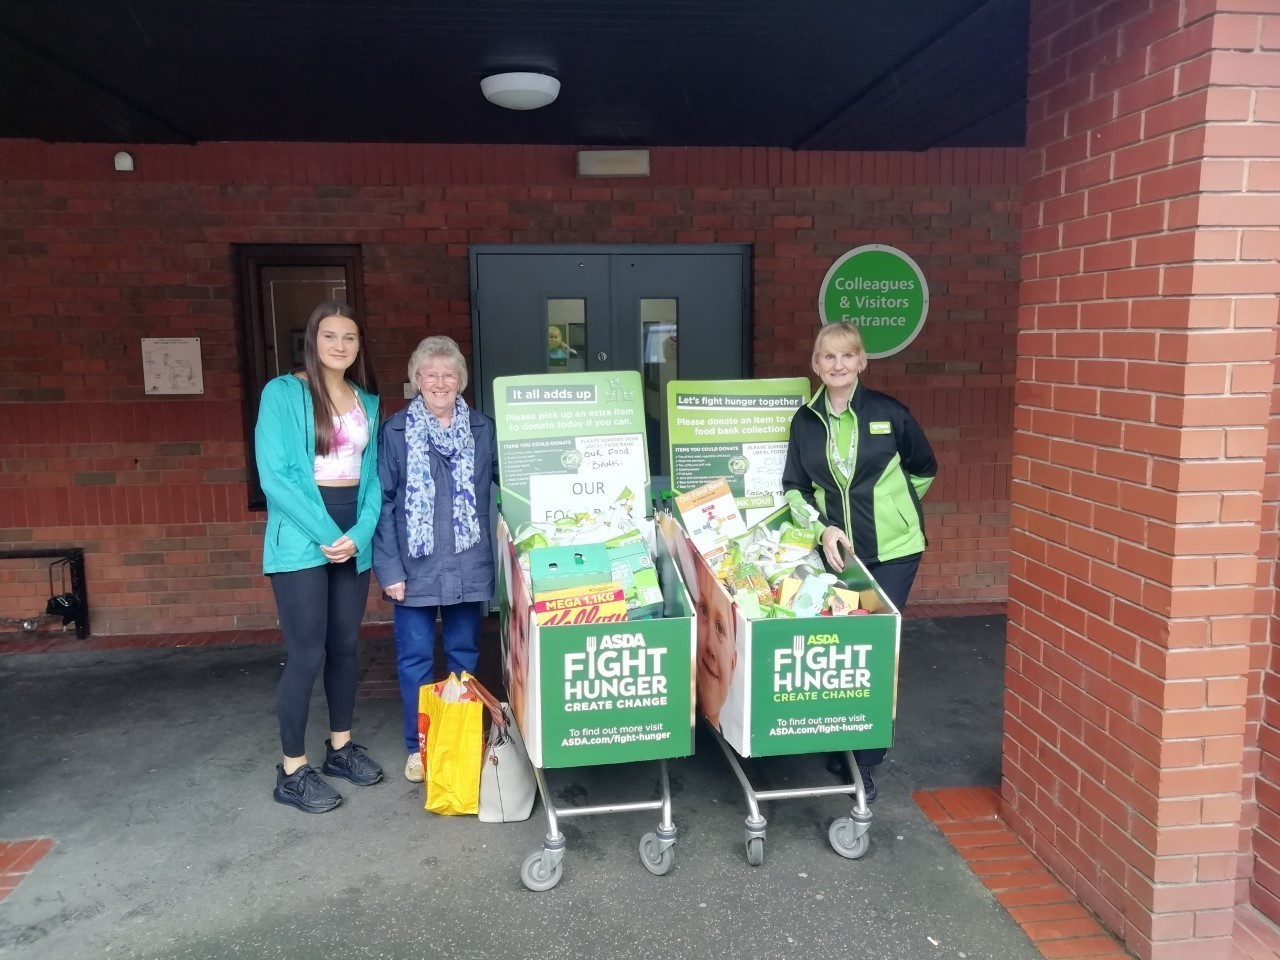 Fighting hunger with Asda's help | Asda Accrington